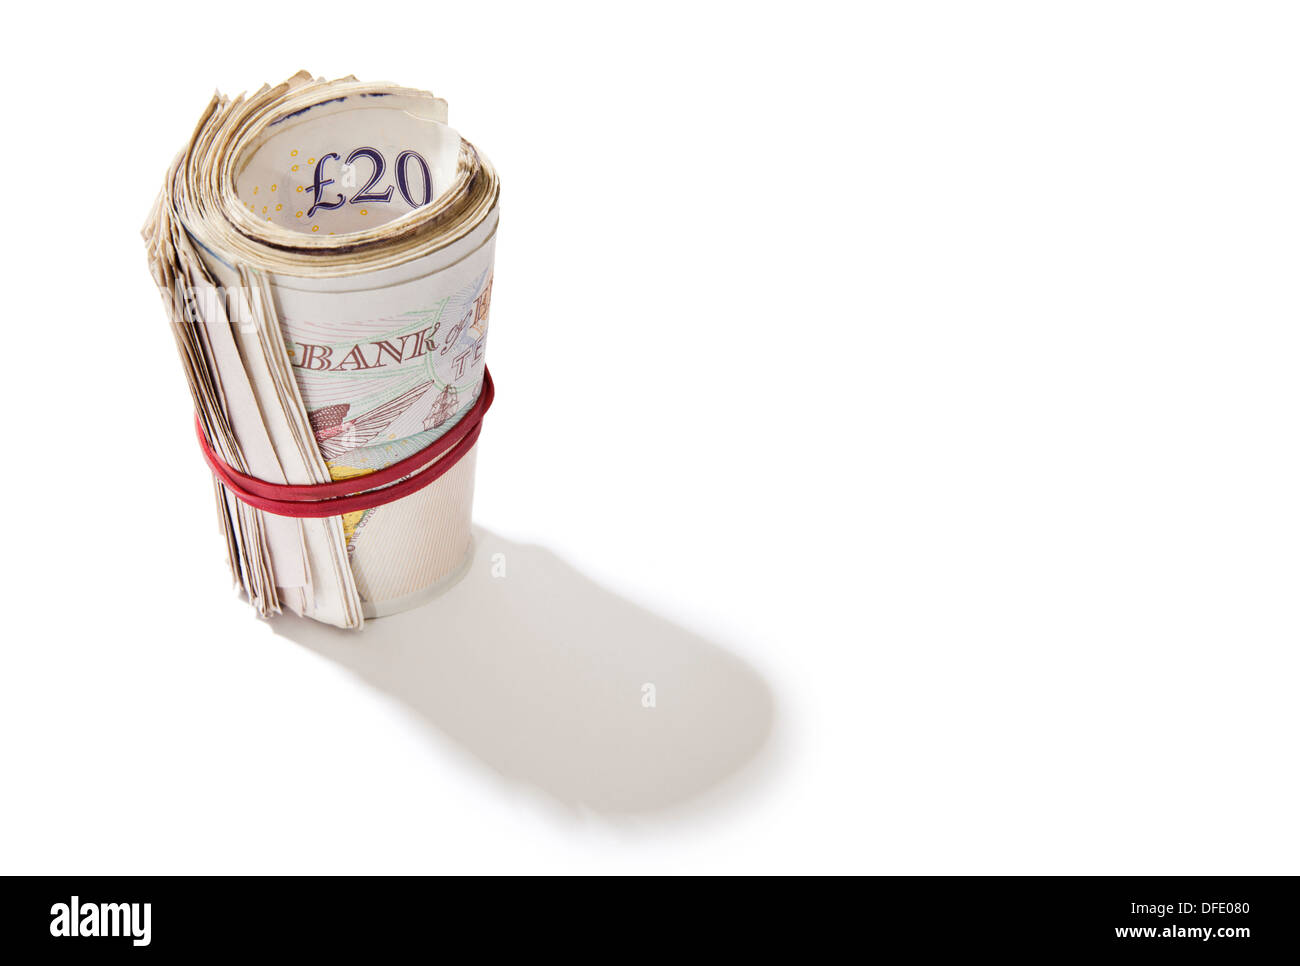 A roll of British notes held together by an elastic band on a white background. - Stock Image